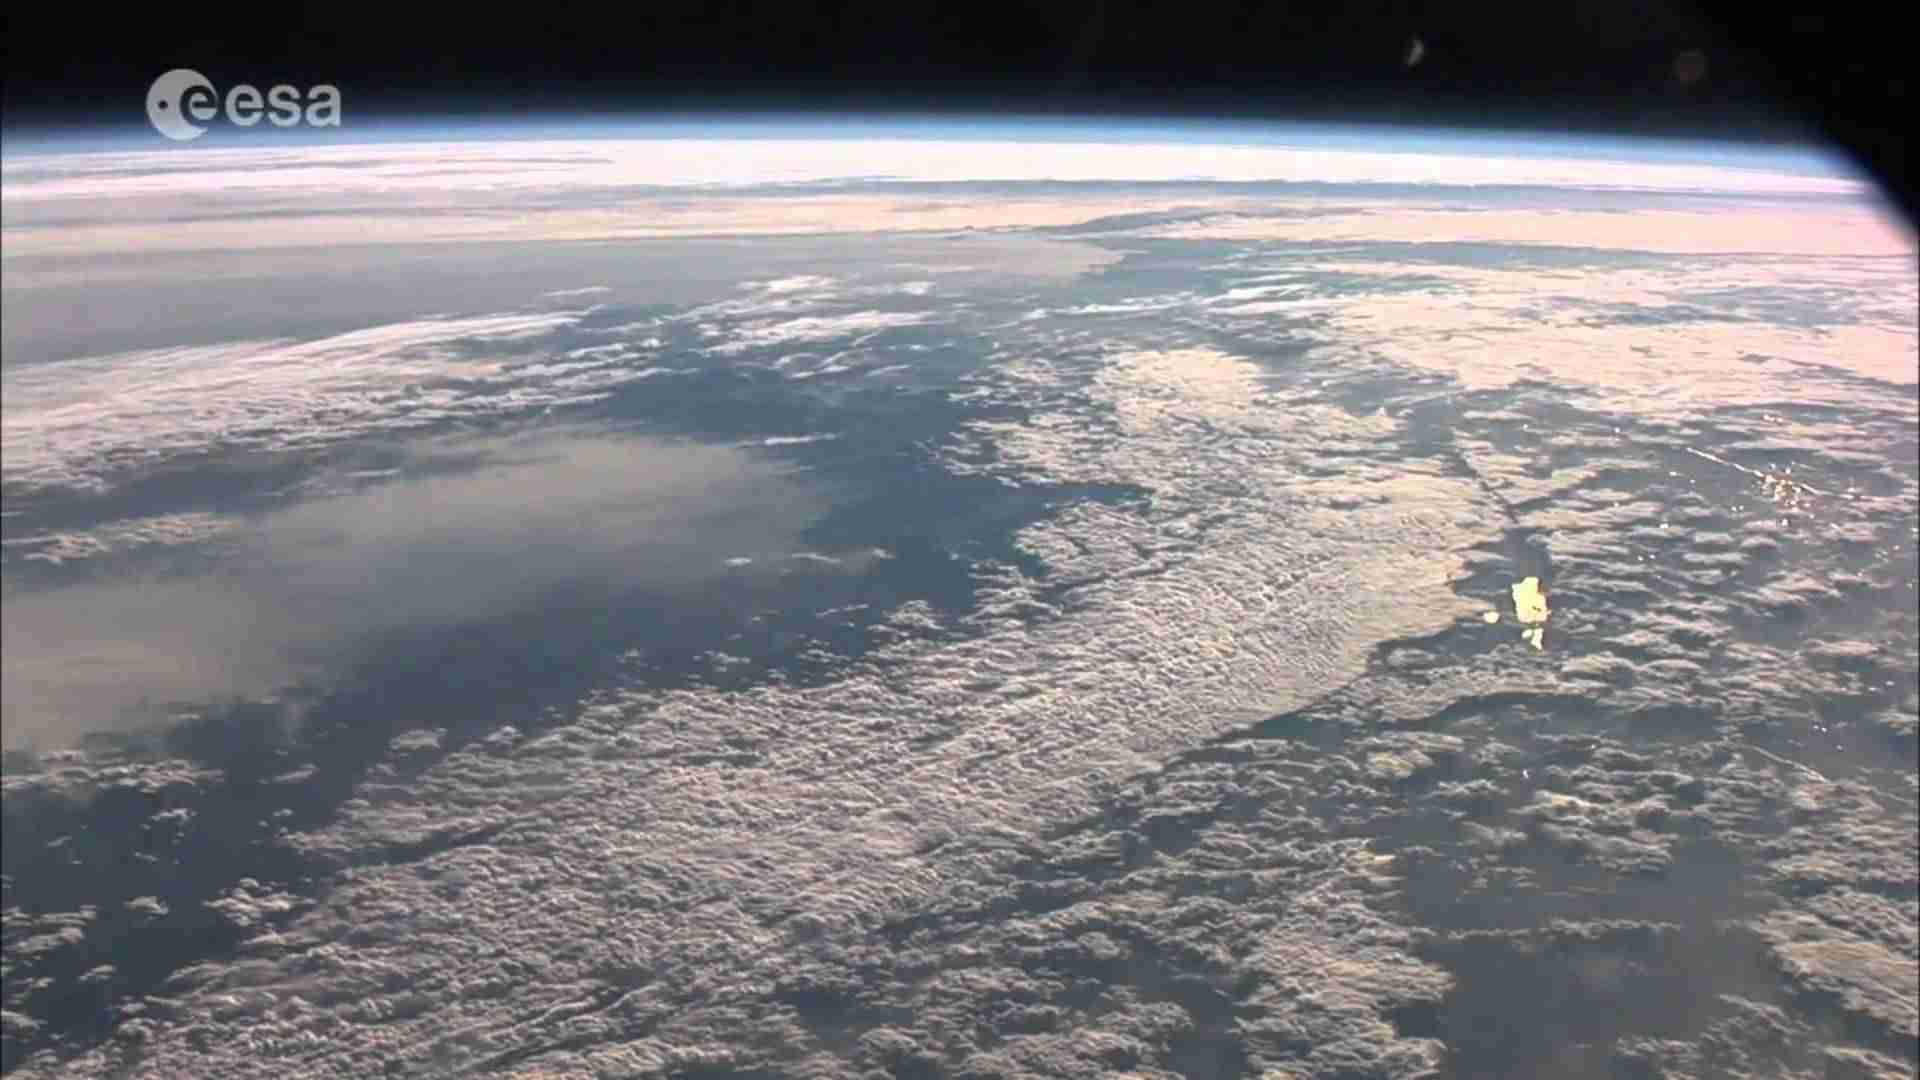 Planet Earth seen from space (Full HD 1080p) ORIGINAL - YouTube